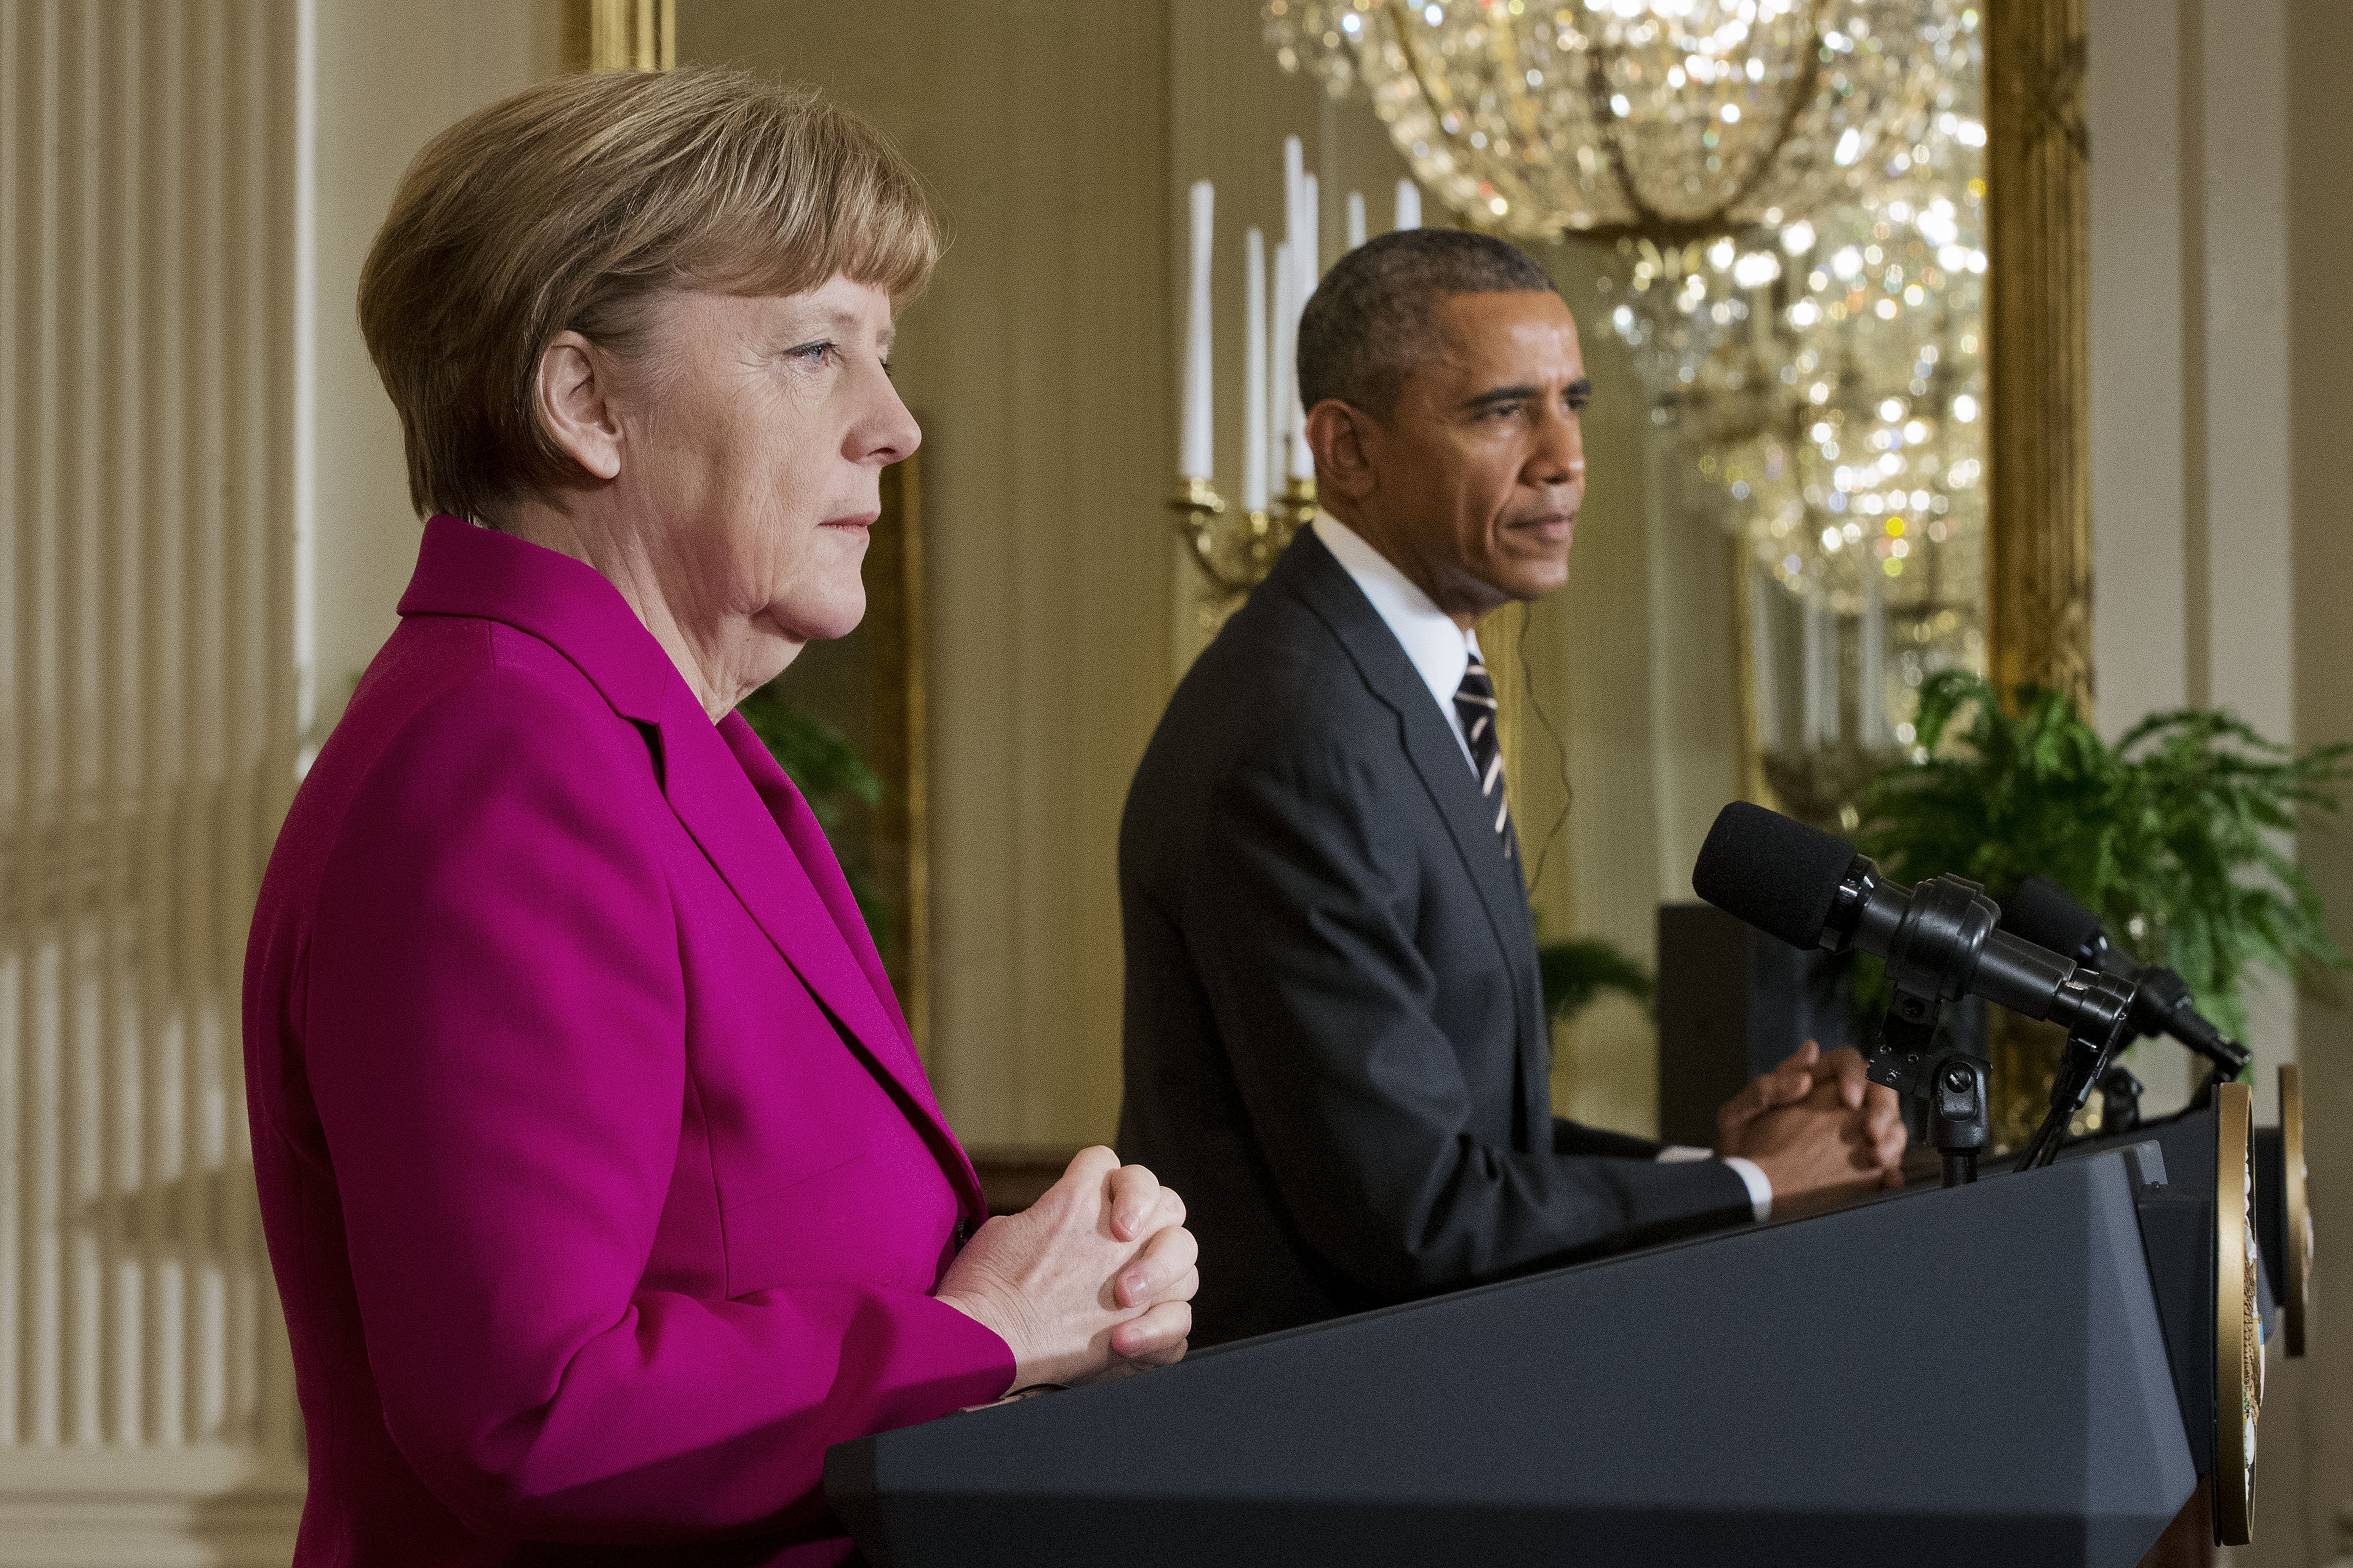 U.S. President Barack Obama and German Chancellor Angela Merkel during their joint news conference in the East Room of the White House in Washington on Feb. 9, 2015